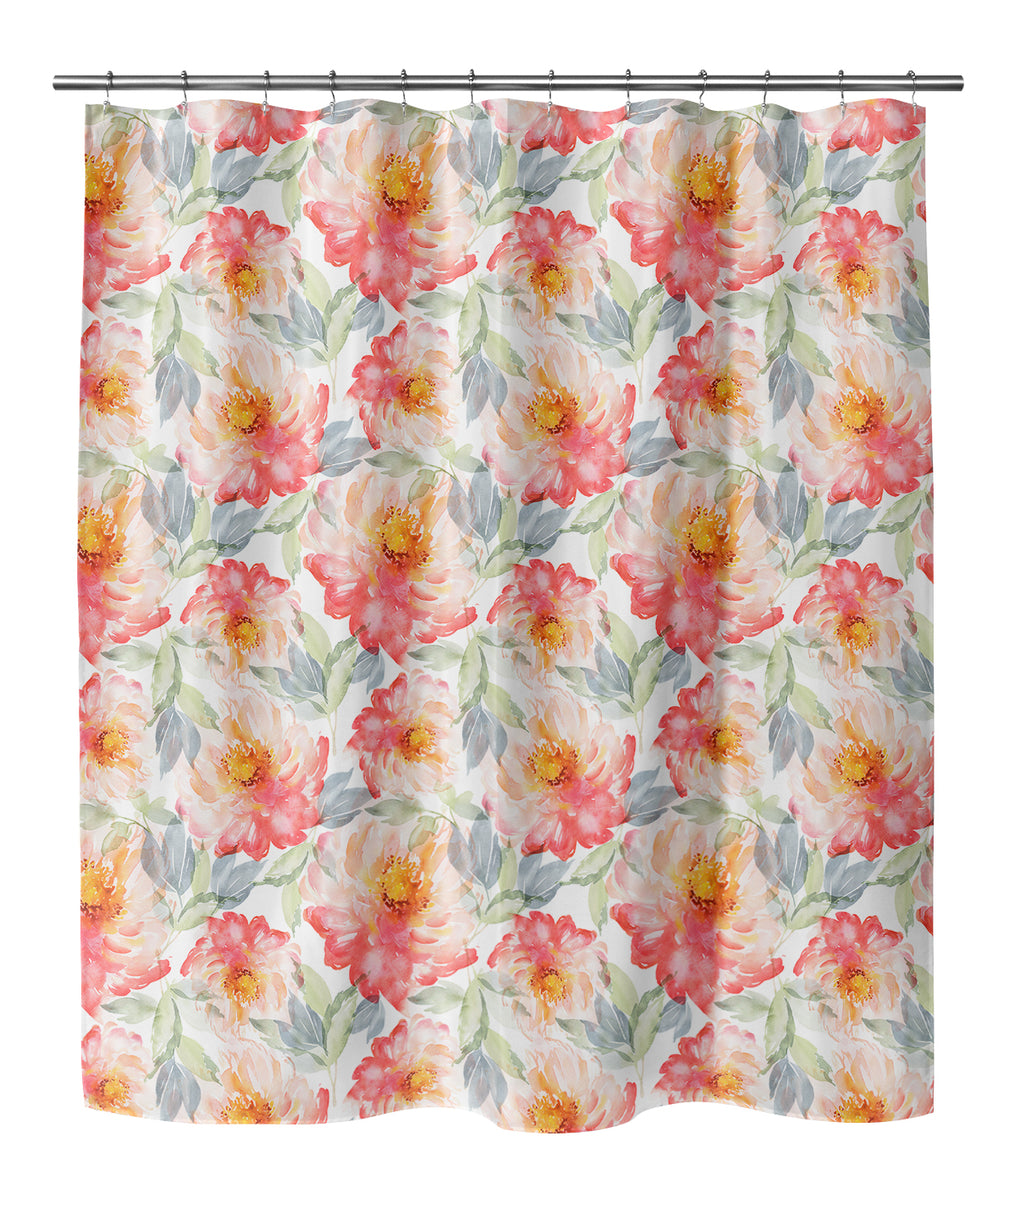 FLORAL LOVE BLUSH Shower Curtain By Jackii Greener